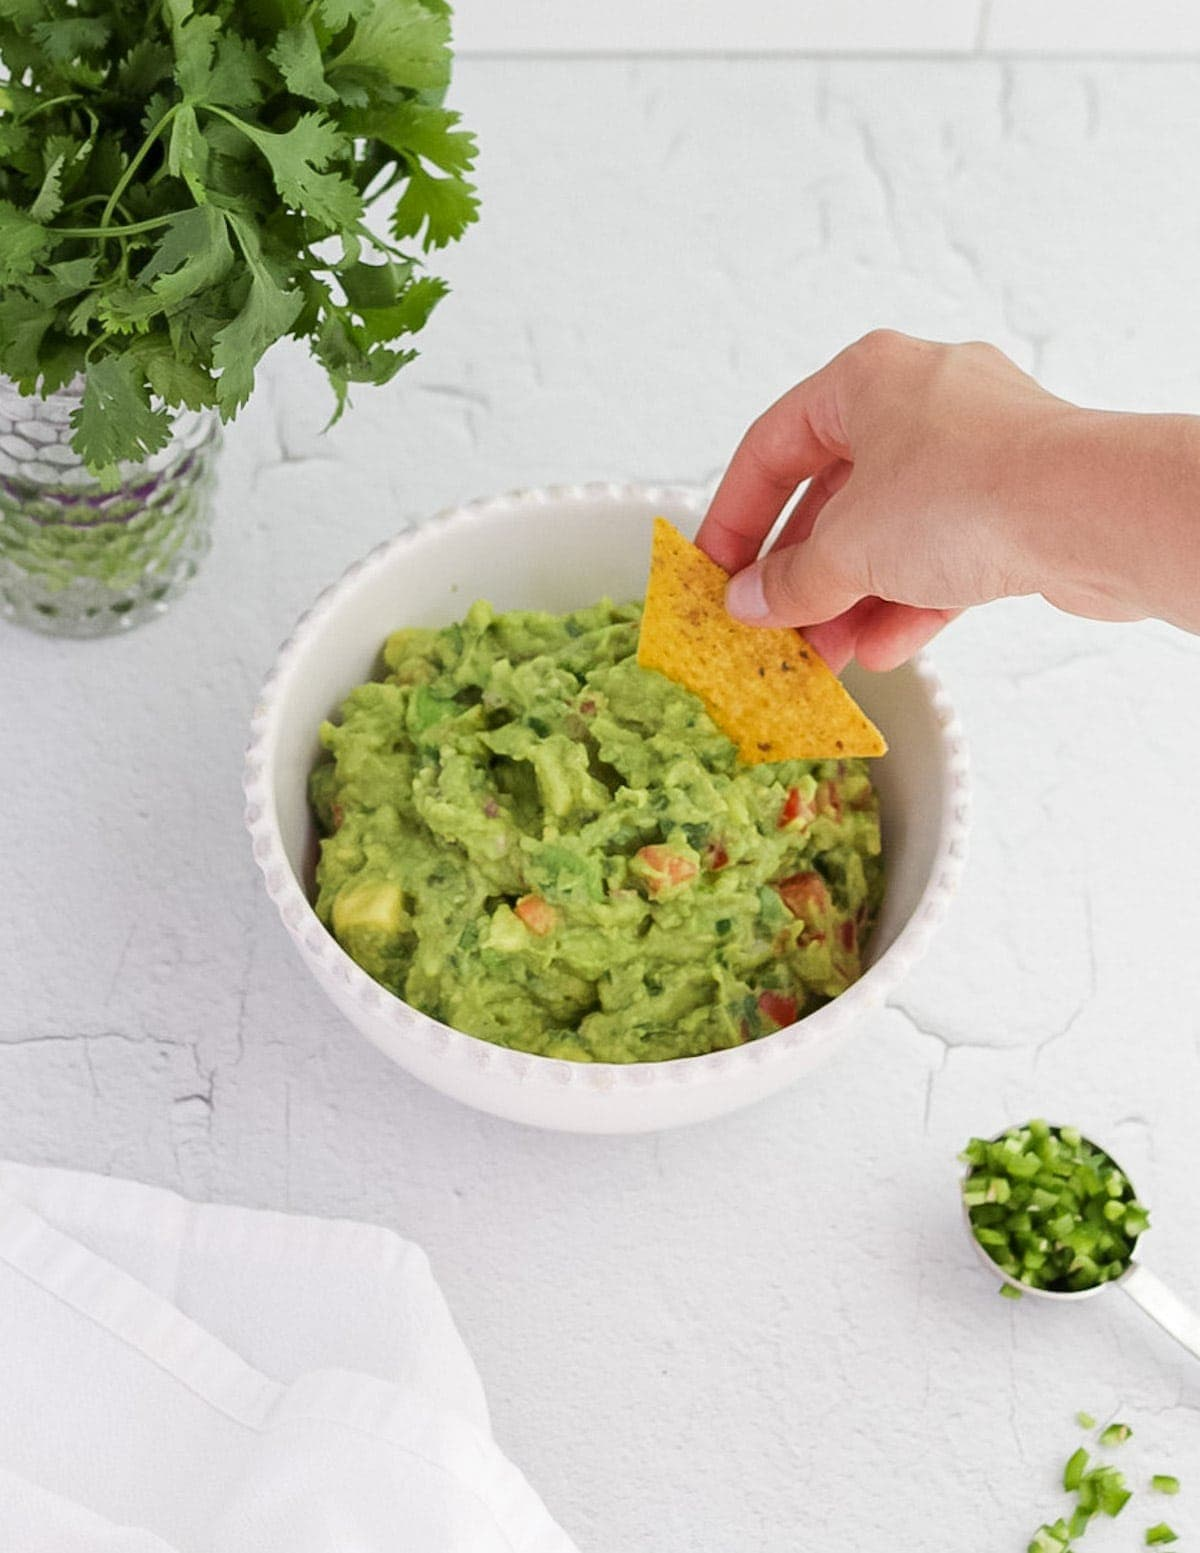 A hand reaching down and dipping a tortilla chip into a bowl of guacamole.